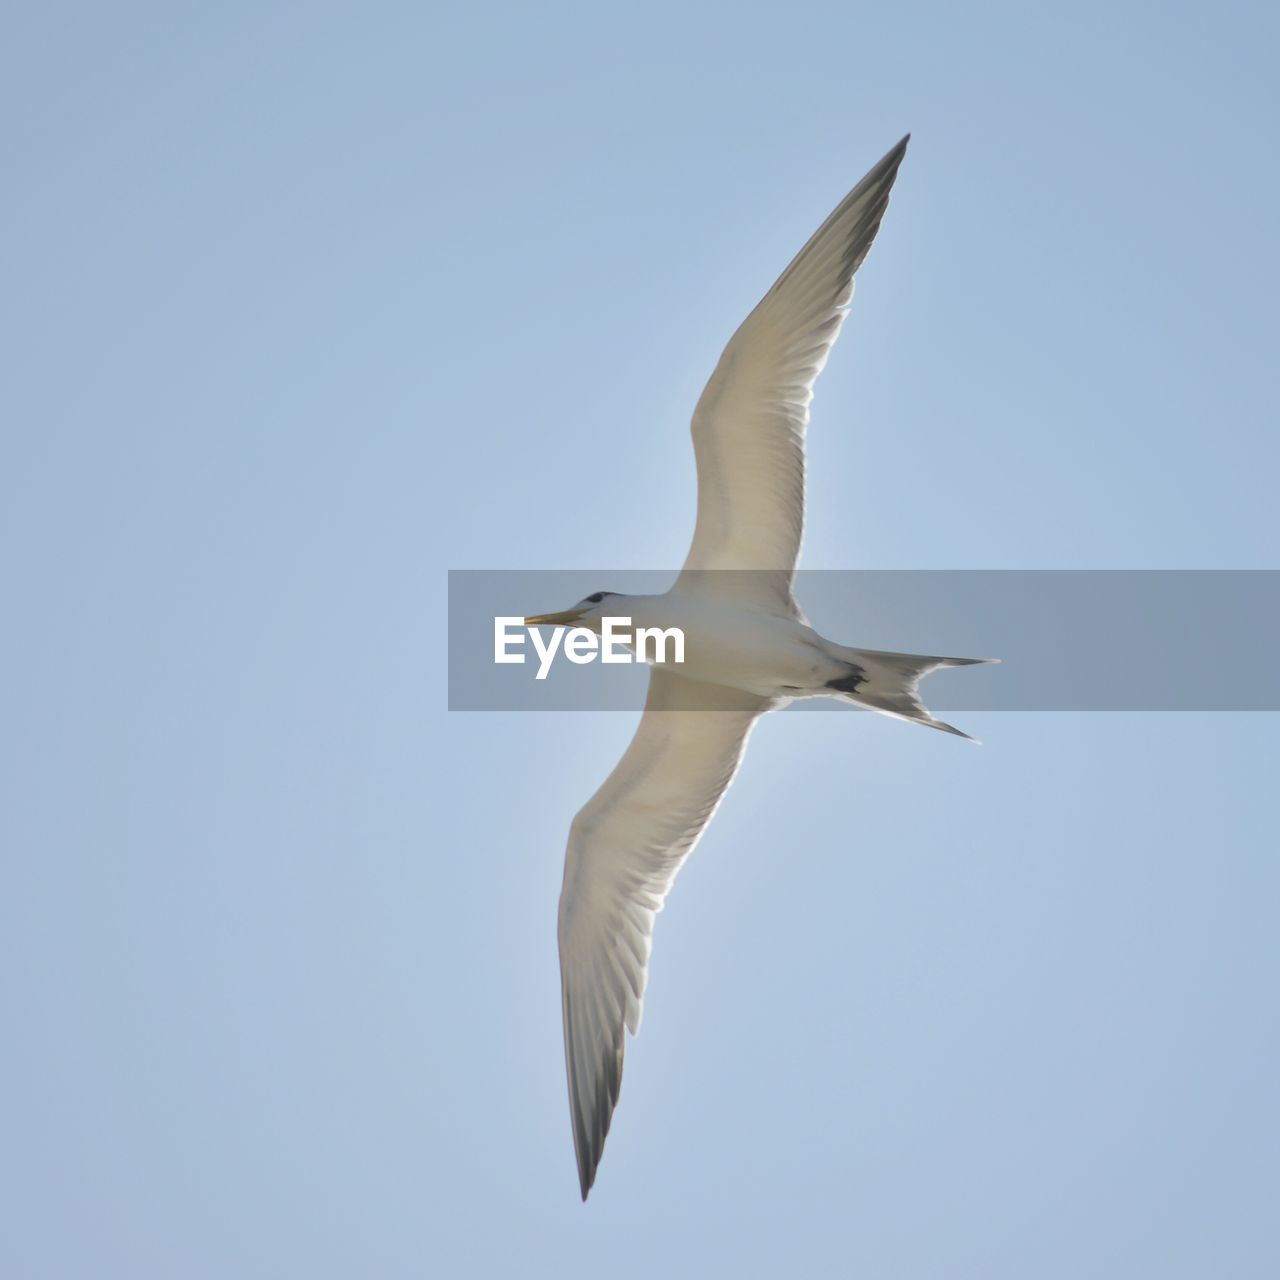 spread wings, flying, animals in the wild, animal wildlife, animal themes, sky, bird, animal, vertebrate, clear sky, one animal, low angle view, mid-air, no people, motion, nature, day, copy space, seagull, white color, outdoors